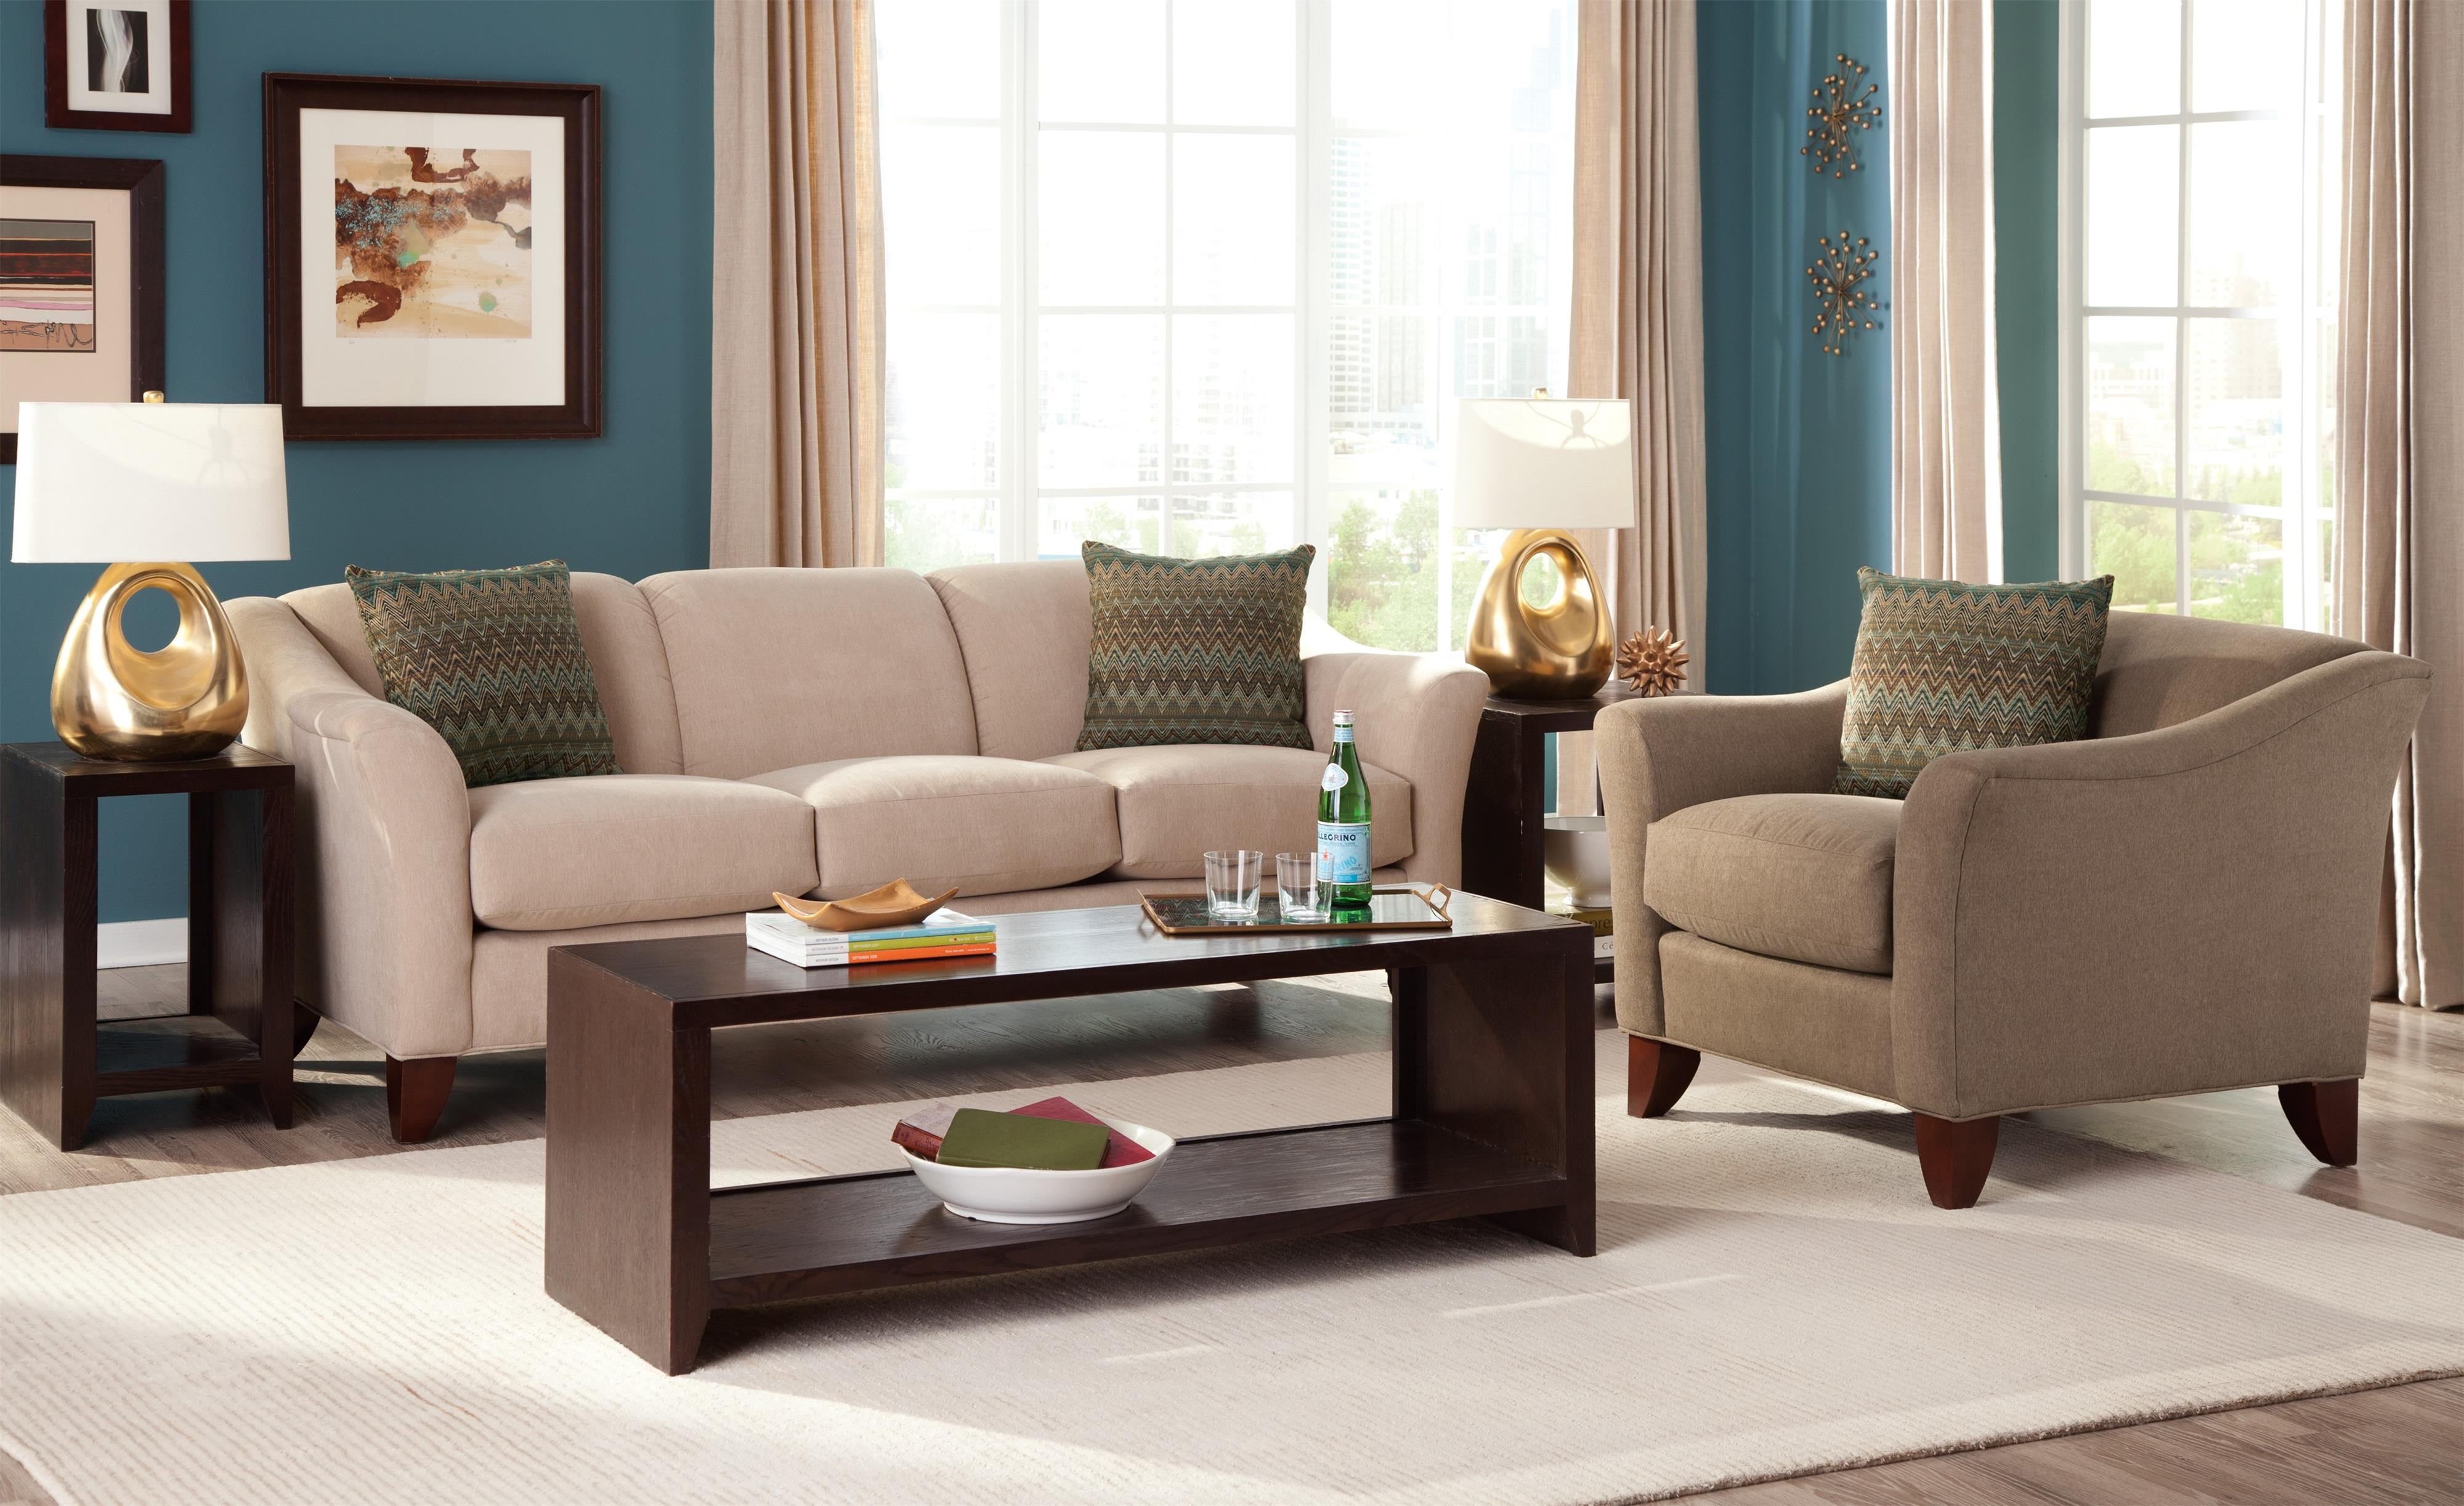 7844 Stationary Living Room Group by Craftmaster at Esprit Decor Home Furnishings